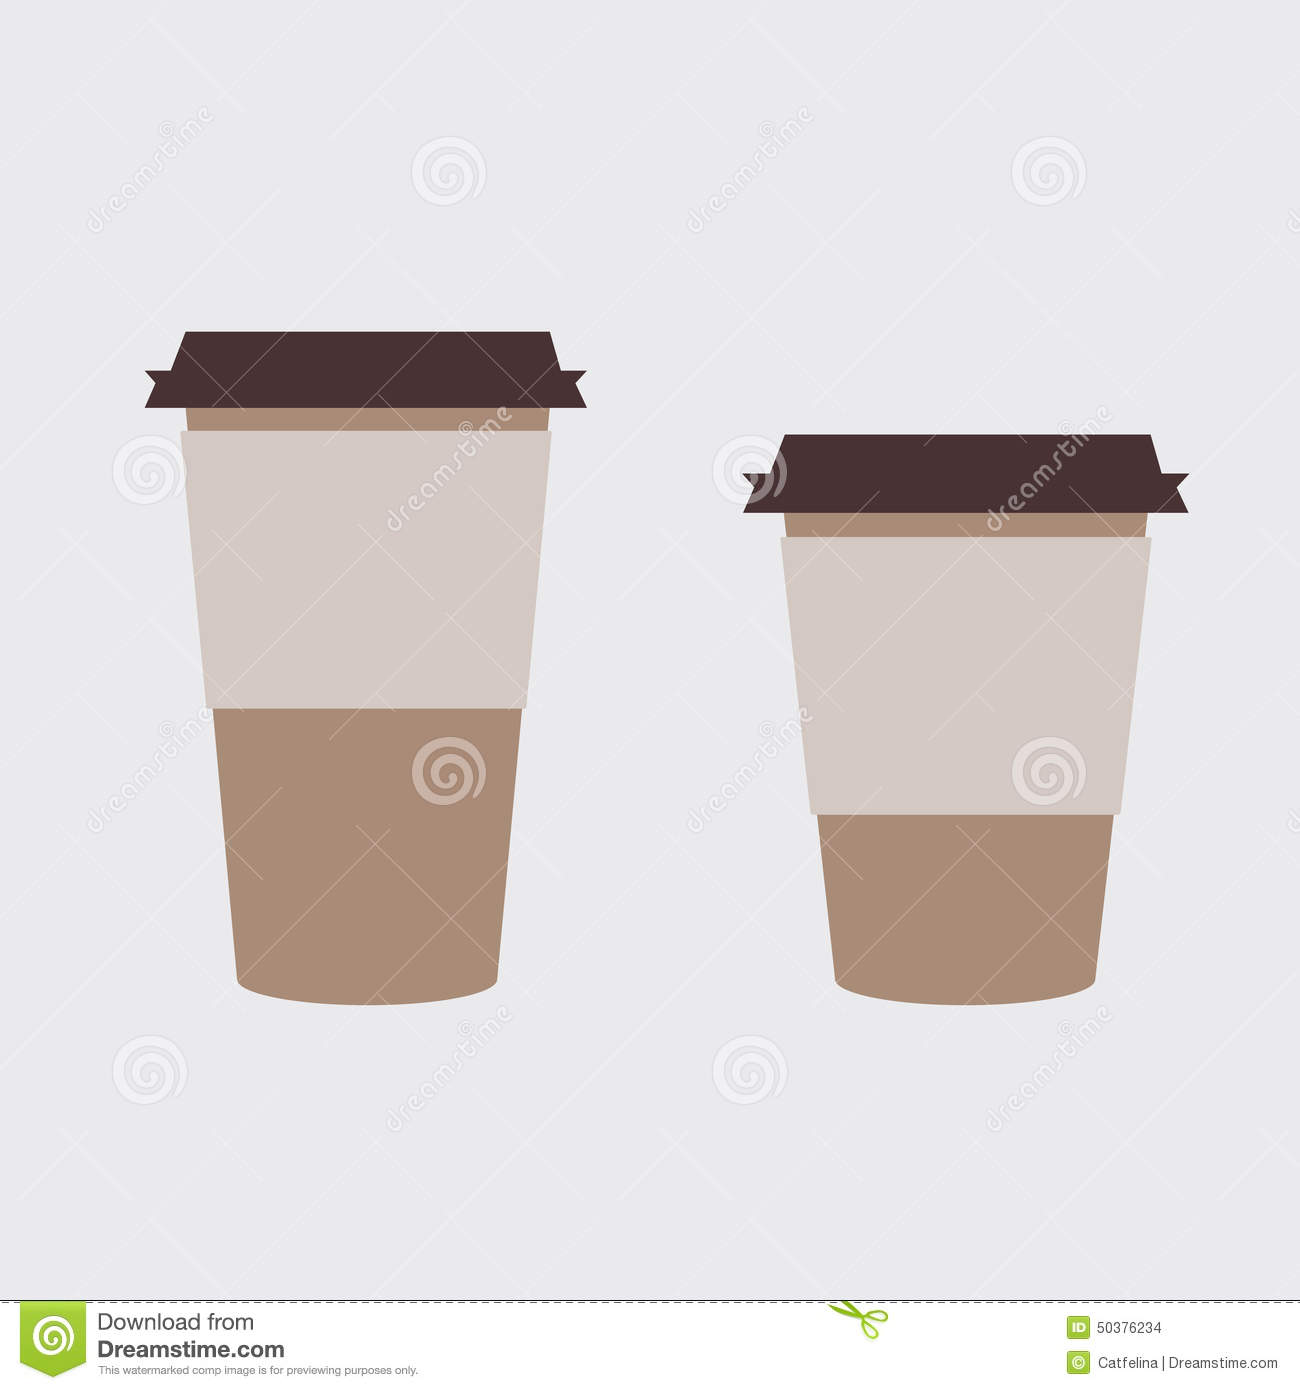 Coffee Cup Template Stock Illustration - Image: 50376234